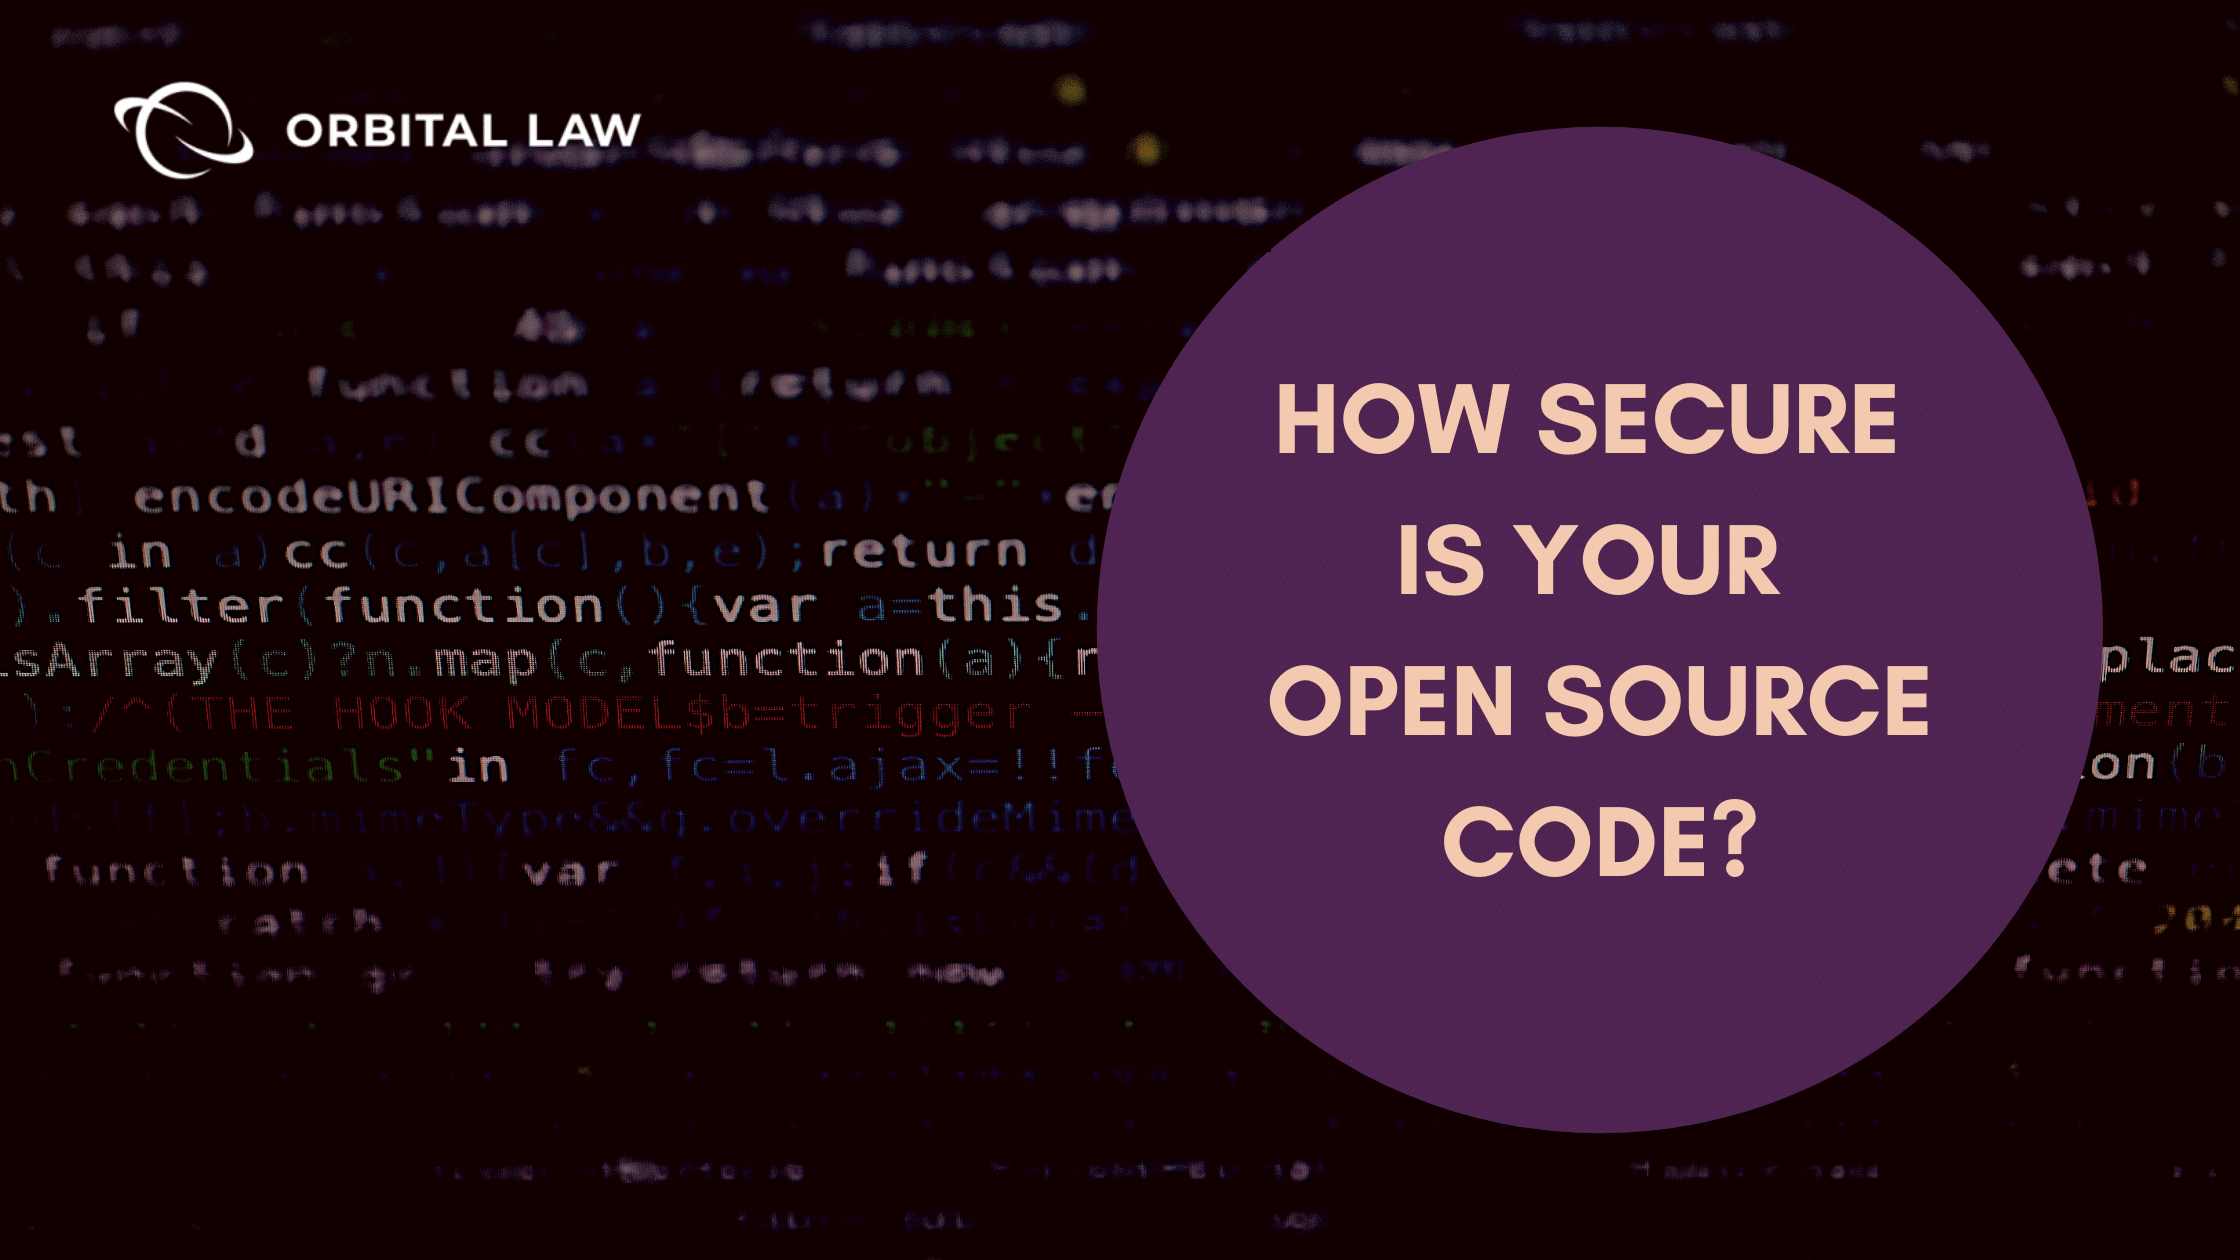 Open Source Software | How to Secure Your Source Code | Orbital Law